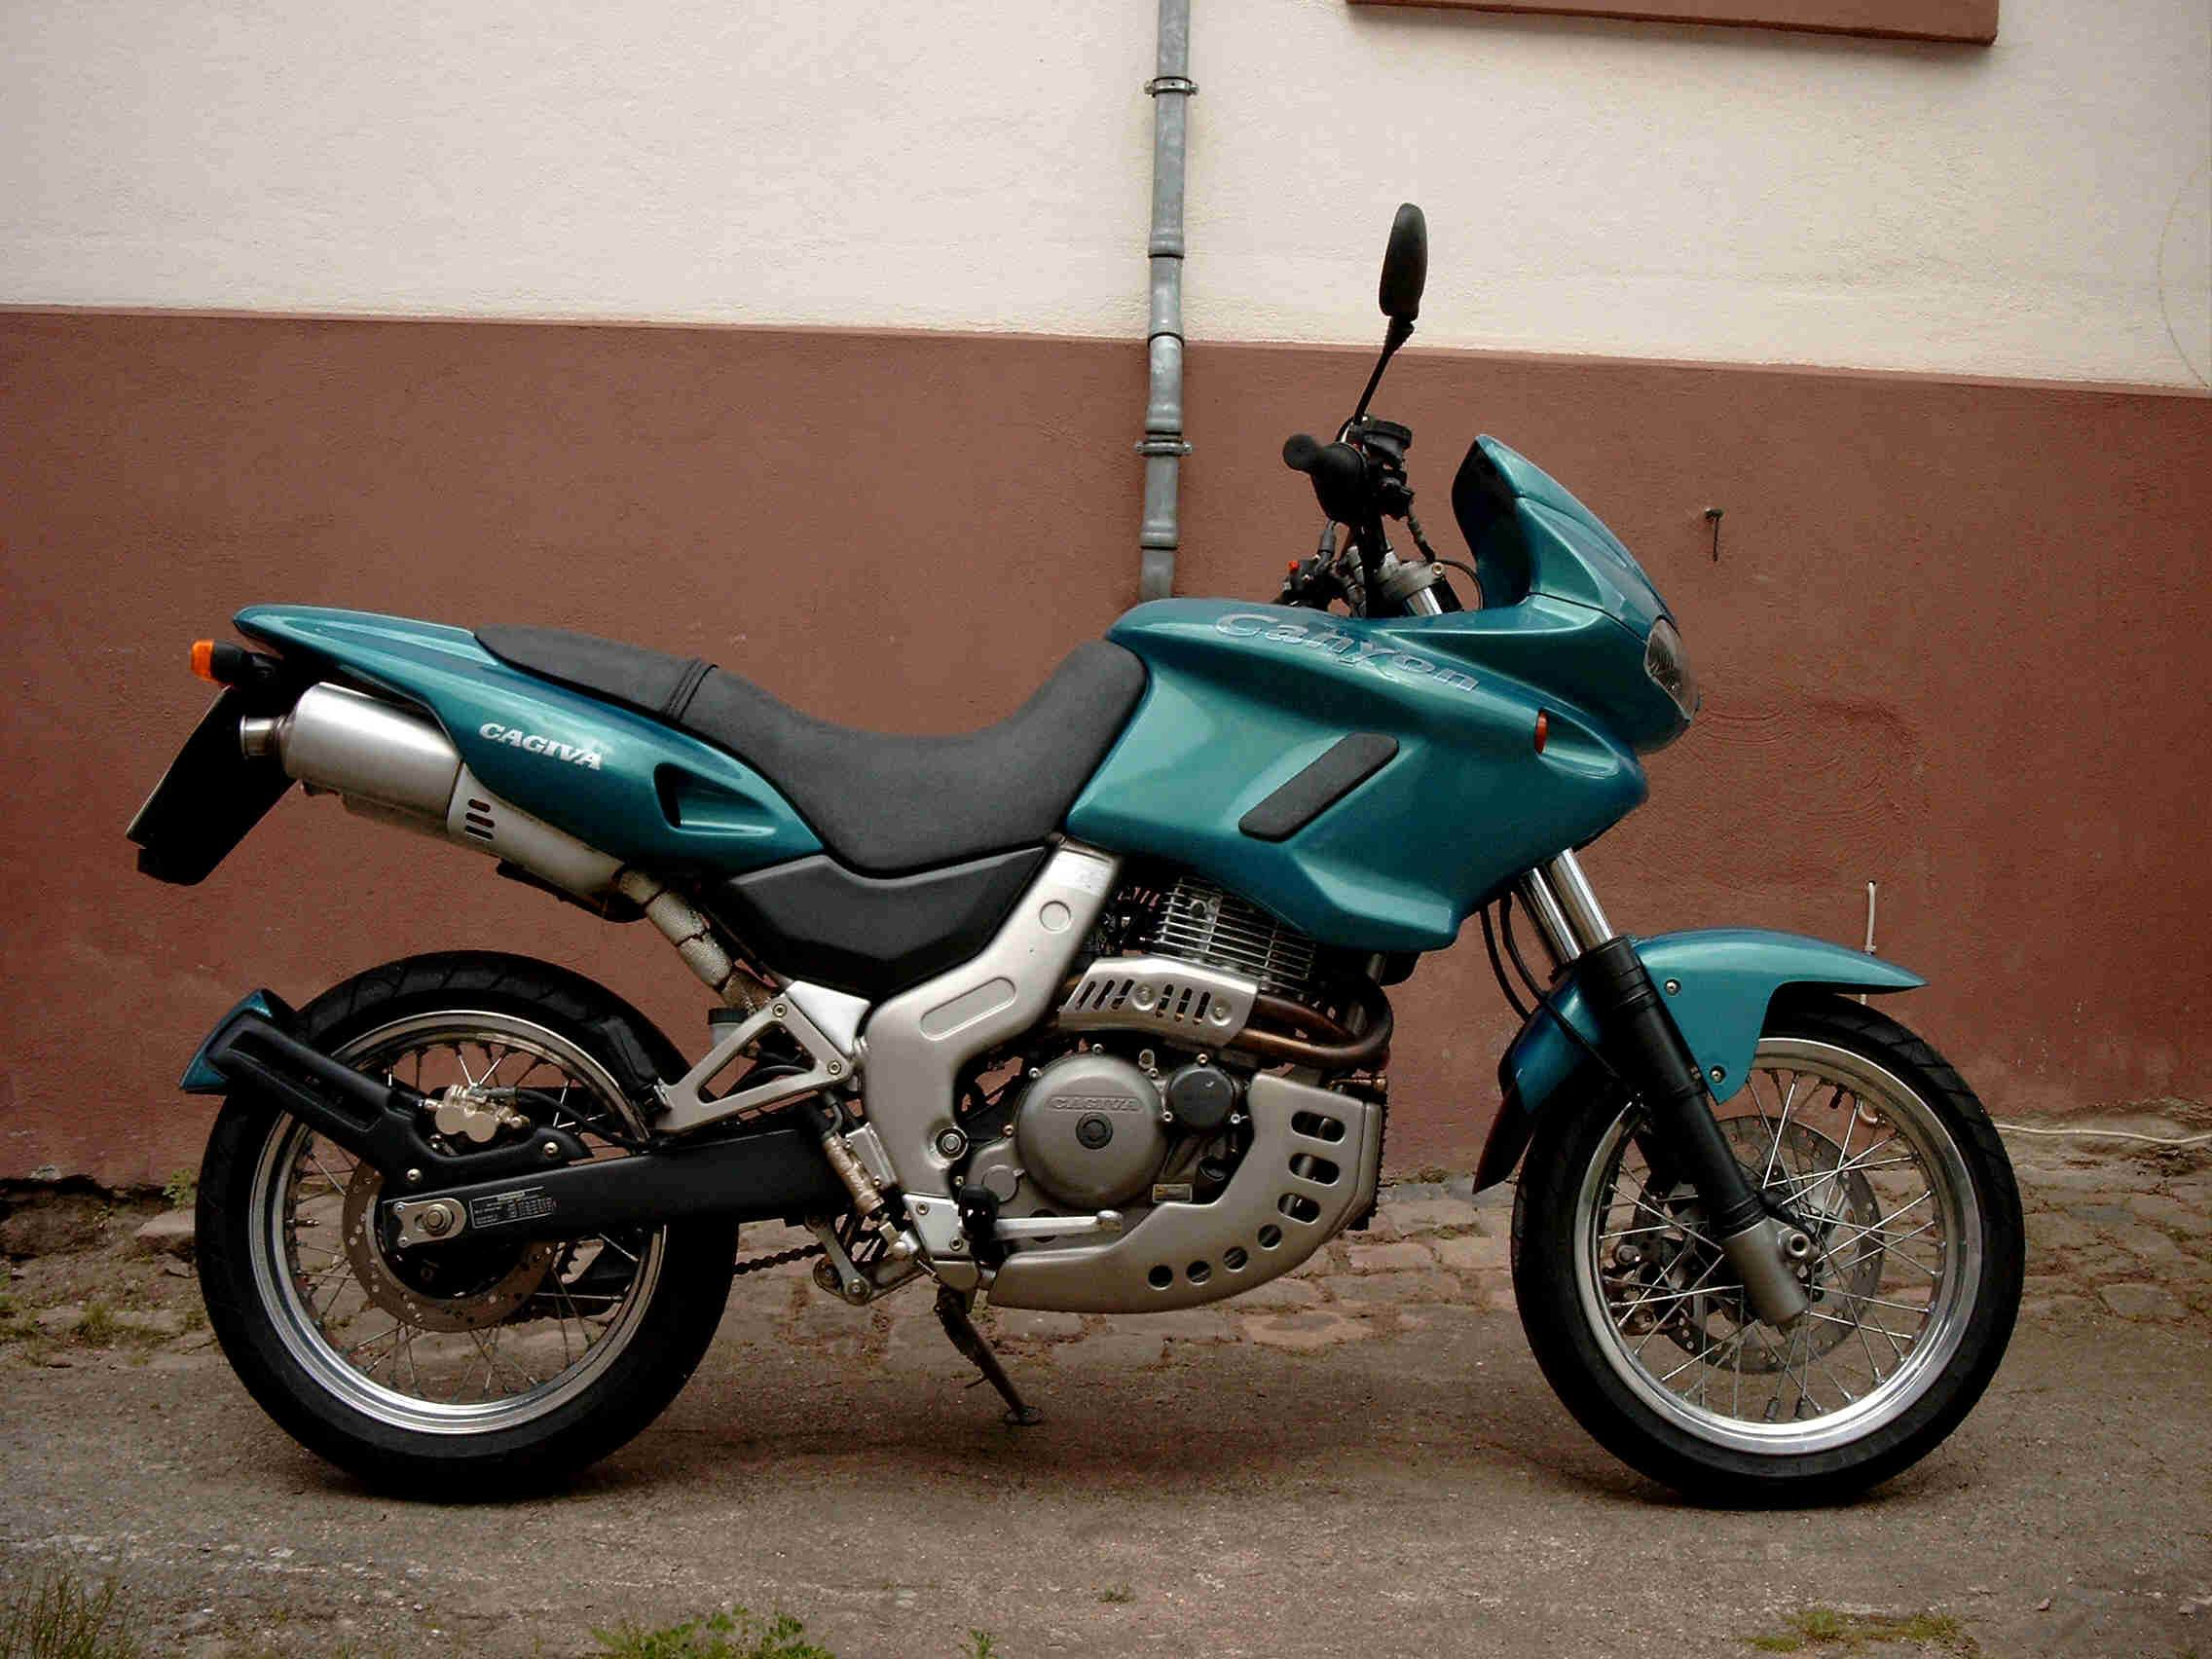 Cagiva Grand Canyon 900 IE 1999 images #67135